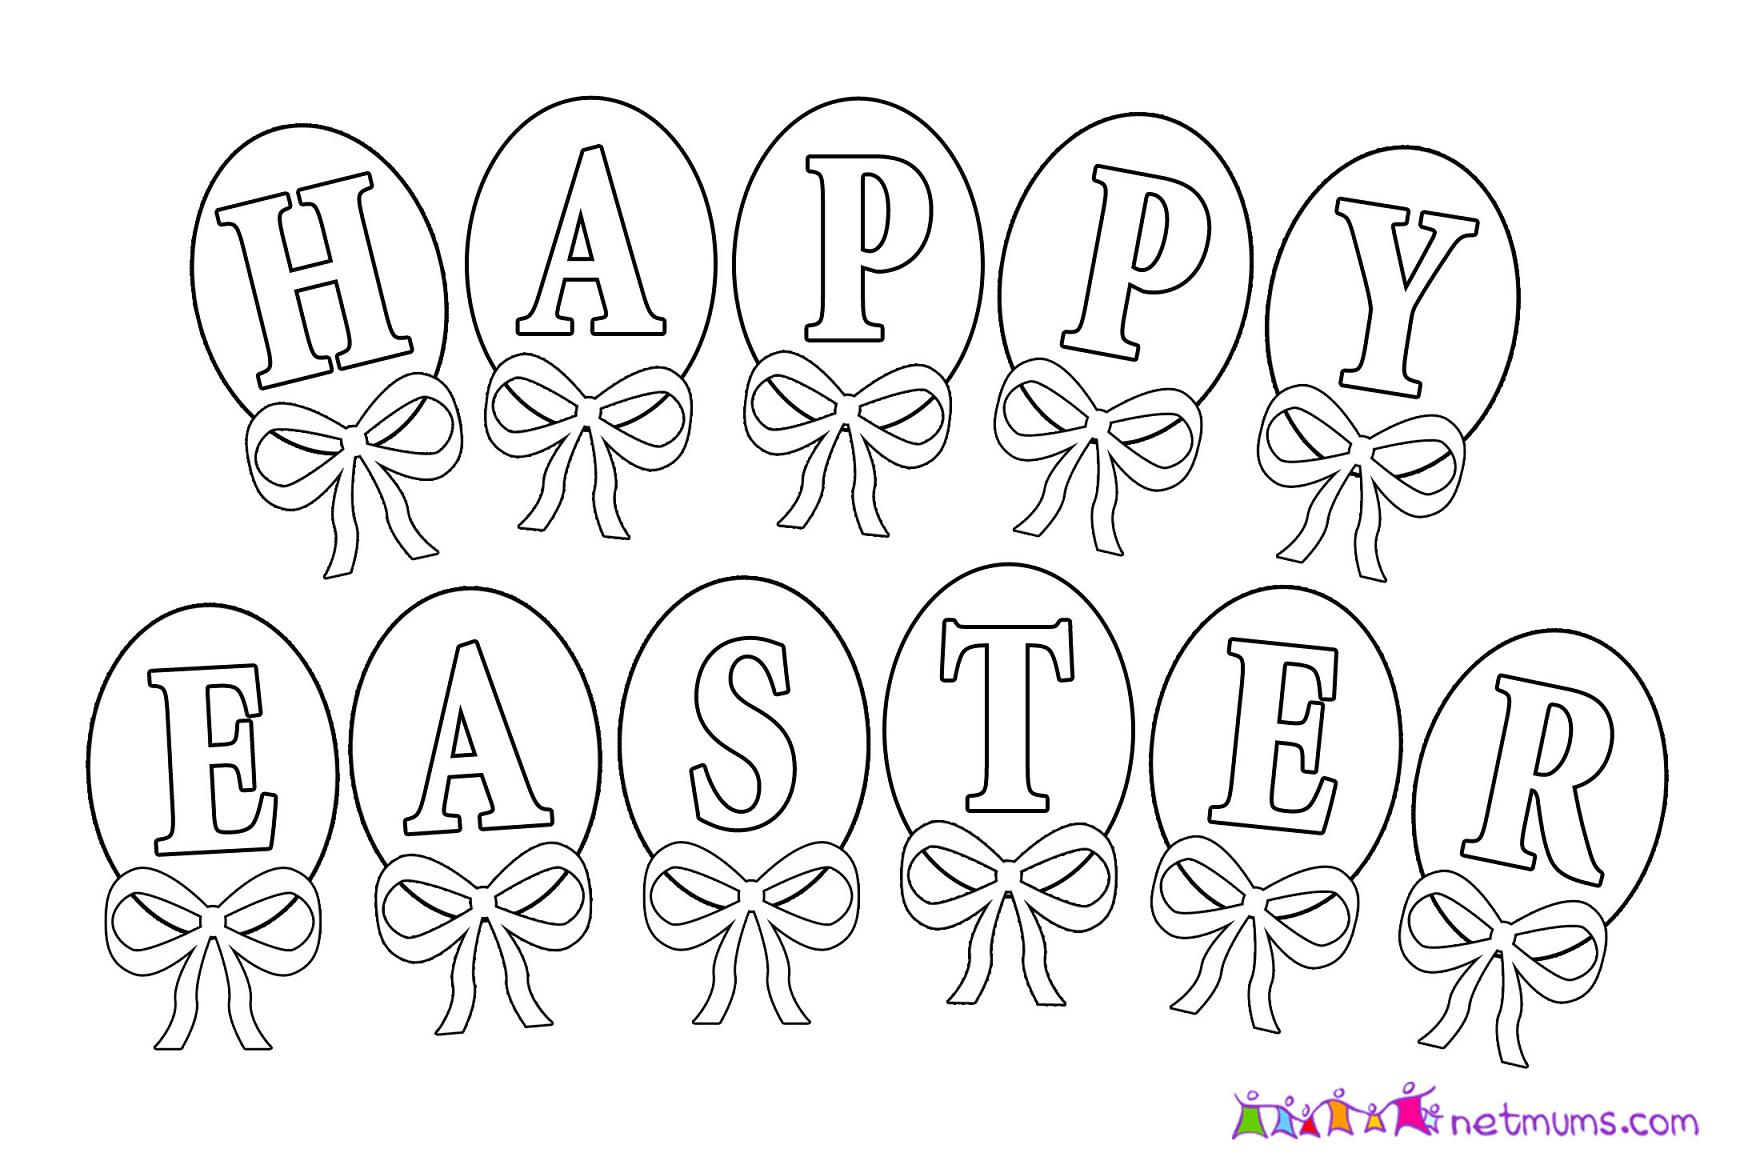 Happy Easter Coloring Pages To Print At Getdrawings